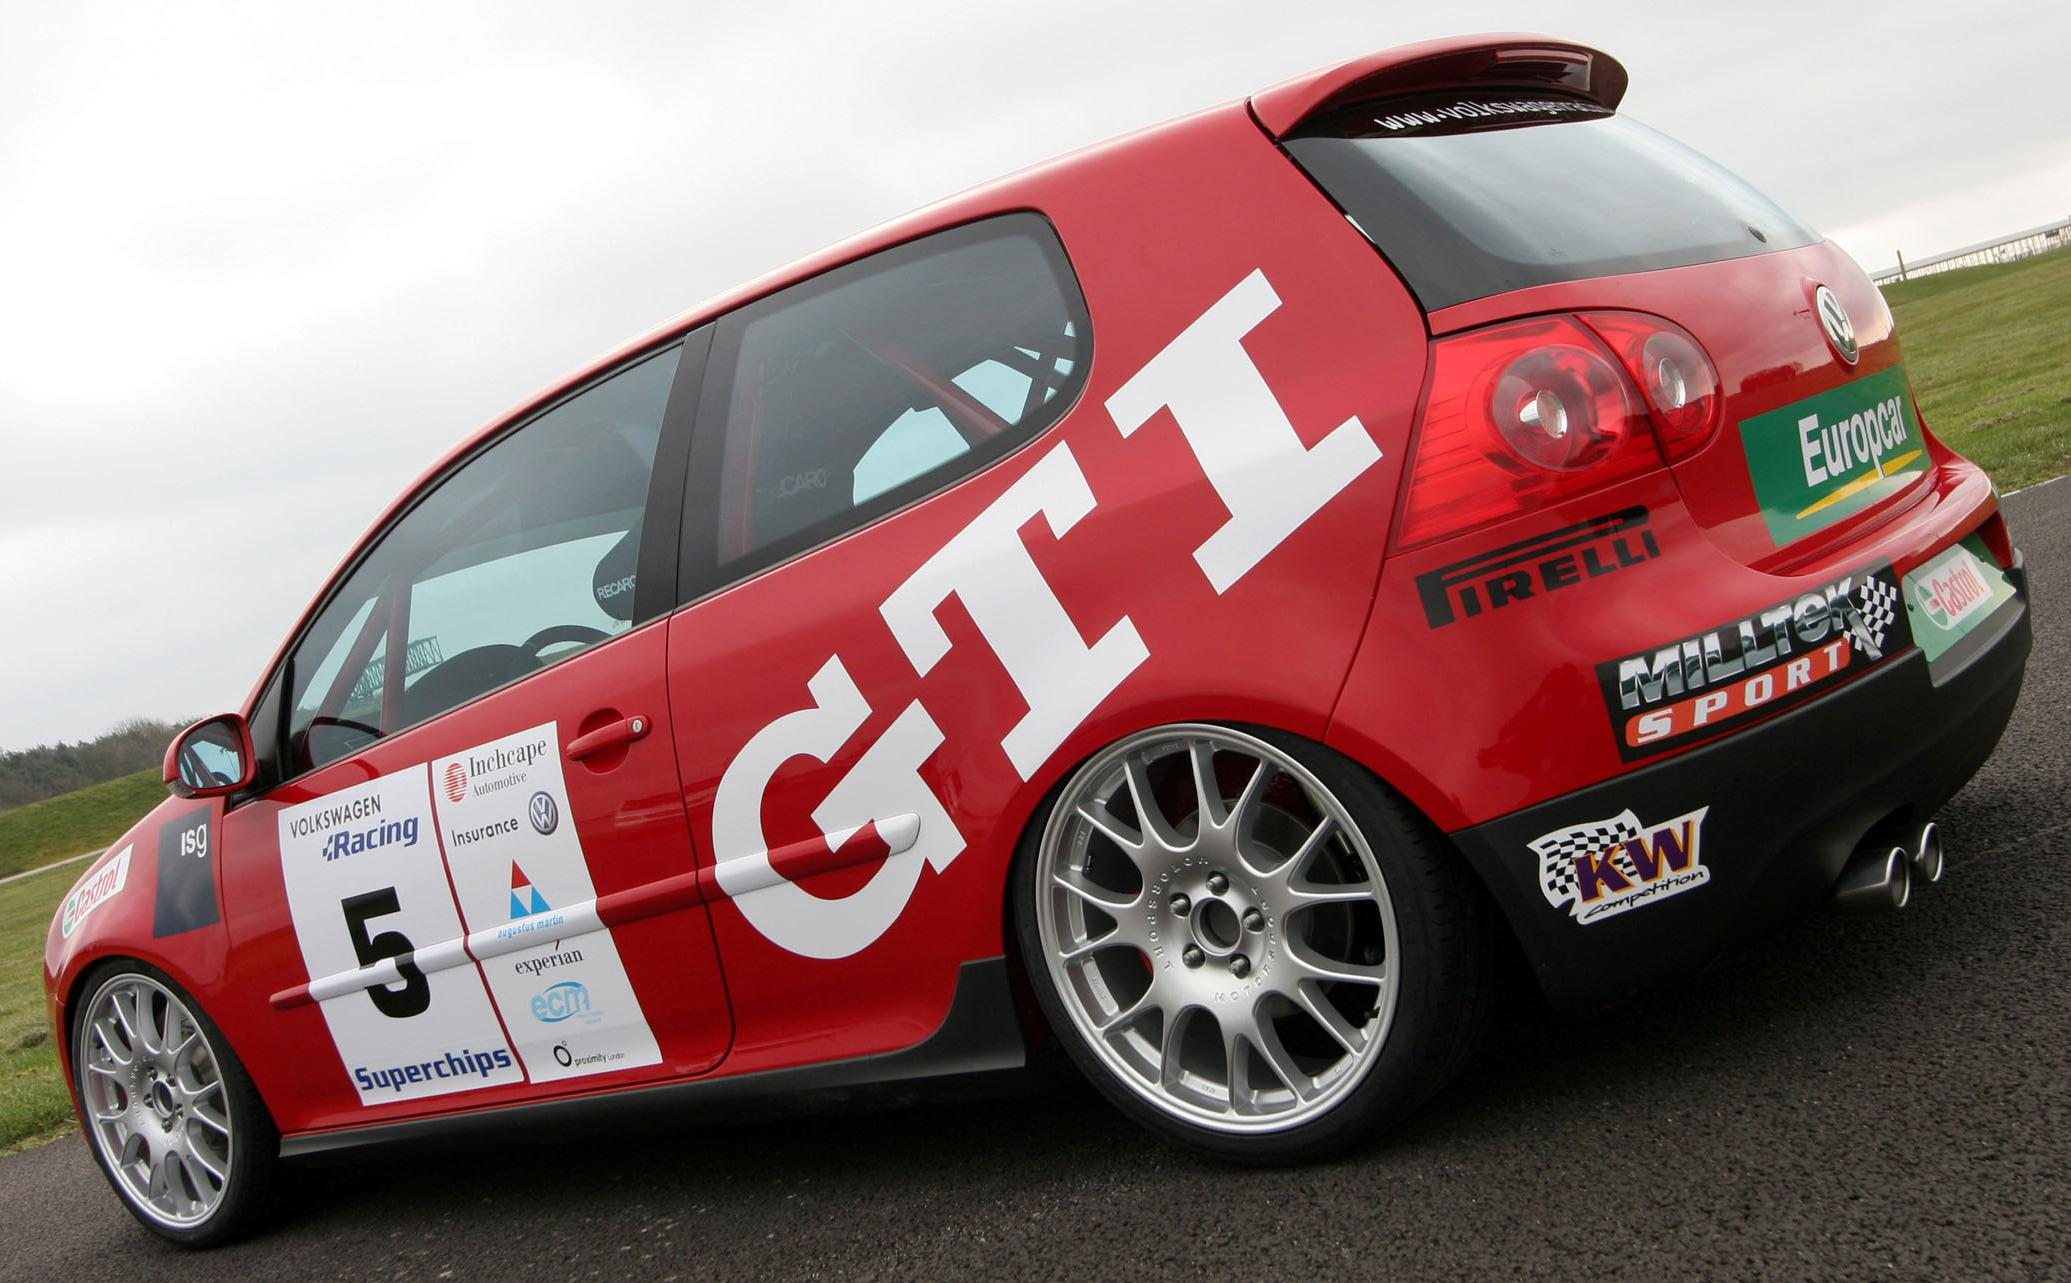 VW-Golf-GTI-Mk5-Racer-and-Milltek-Sport-Exhaust-System